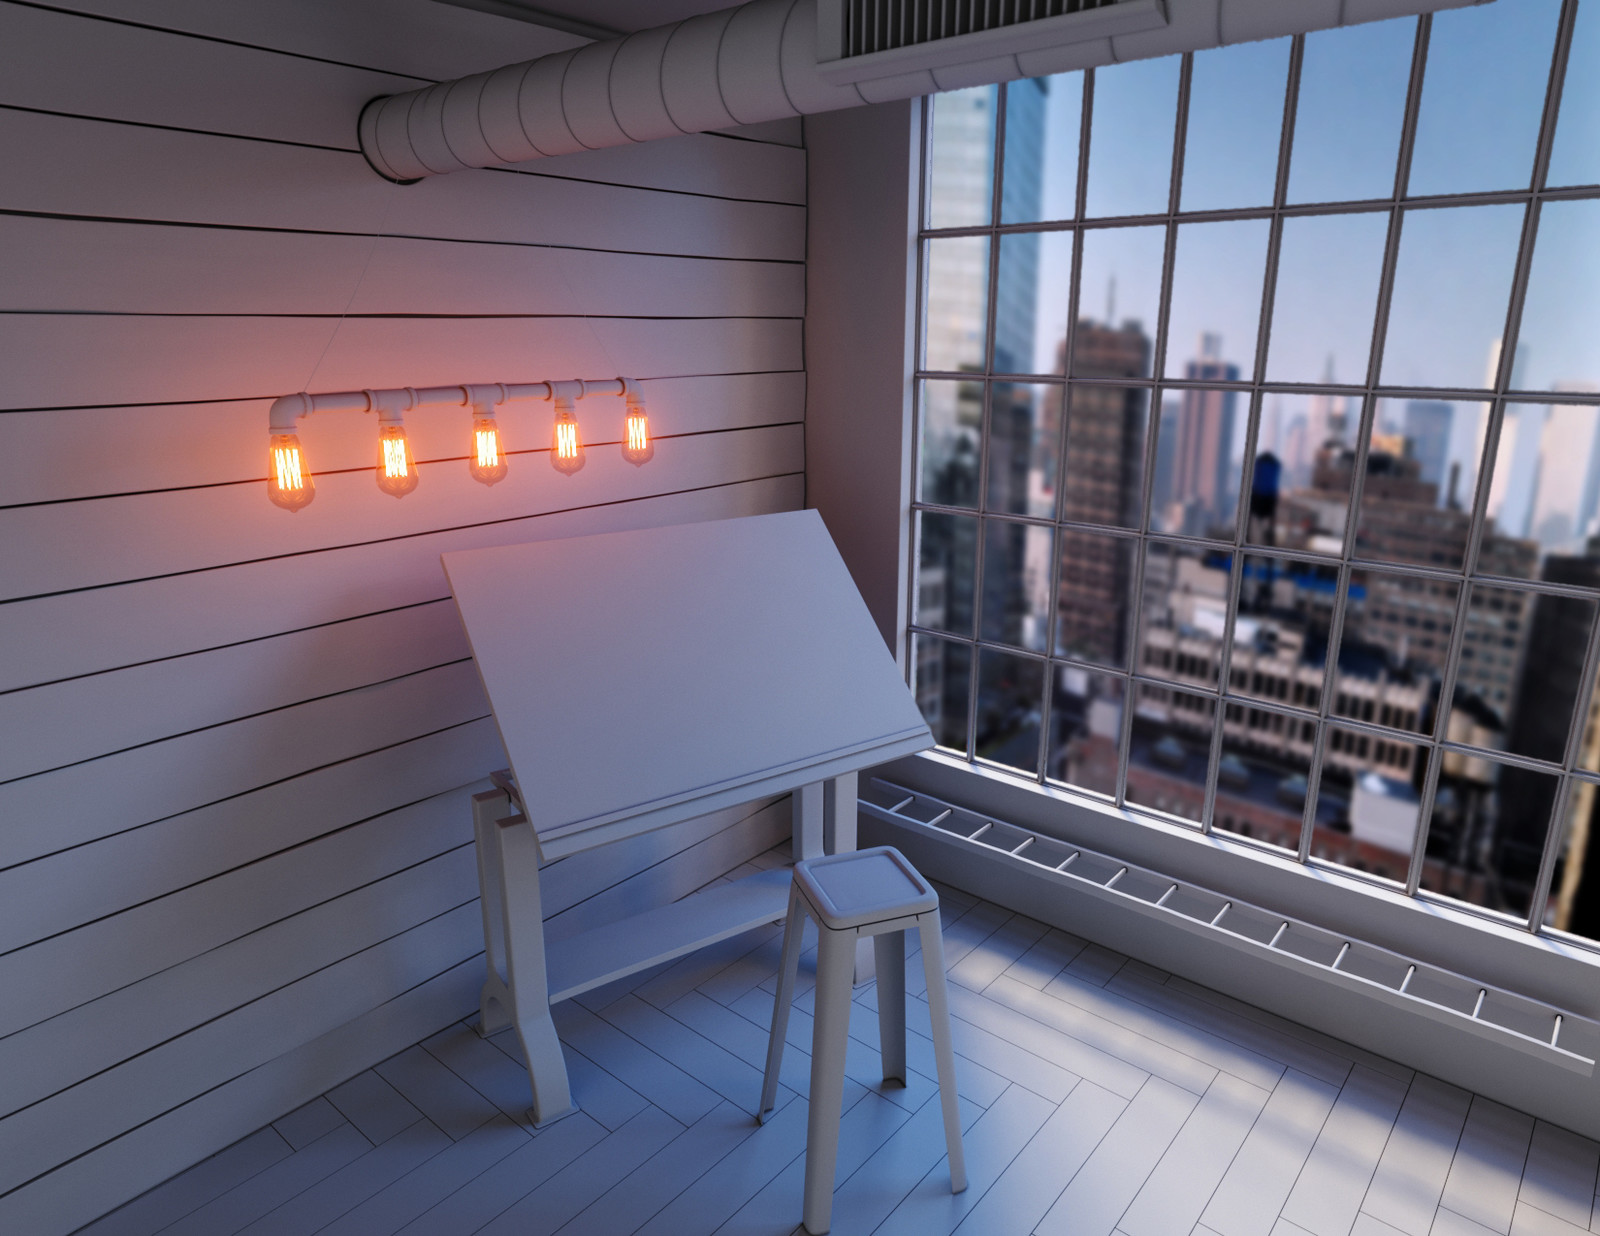 Lighting and Backplate Test. Added Corona Sun - Intensity=0.025. Size= 25. New HDRI (different from the background seen above) Models added - Drafting table, stool, window, helix and flaps on ventilator. Displaced the wall wood panels. Added flooring